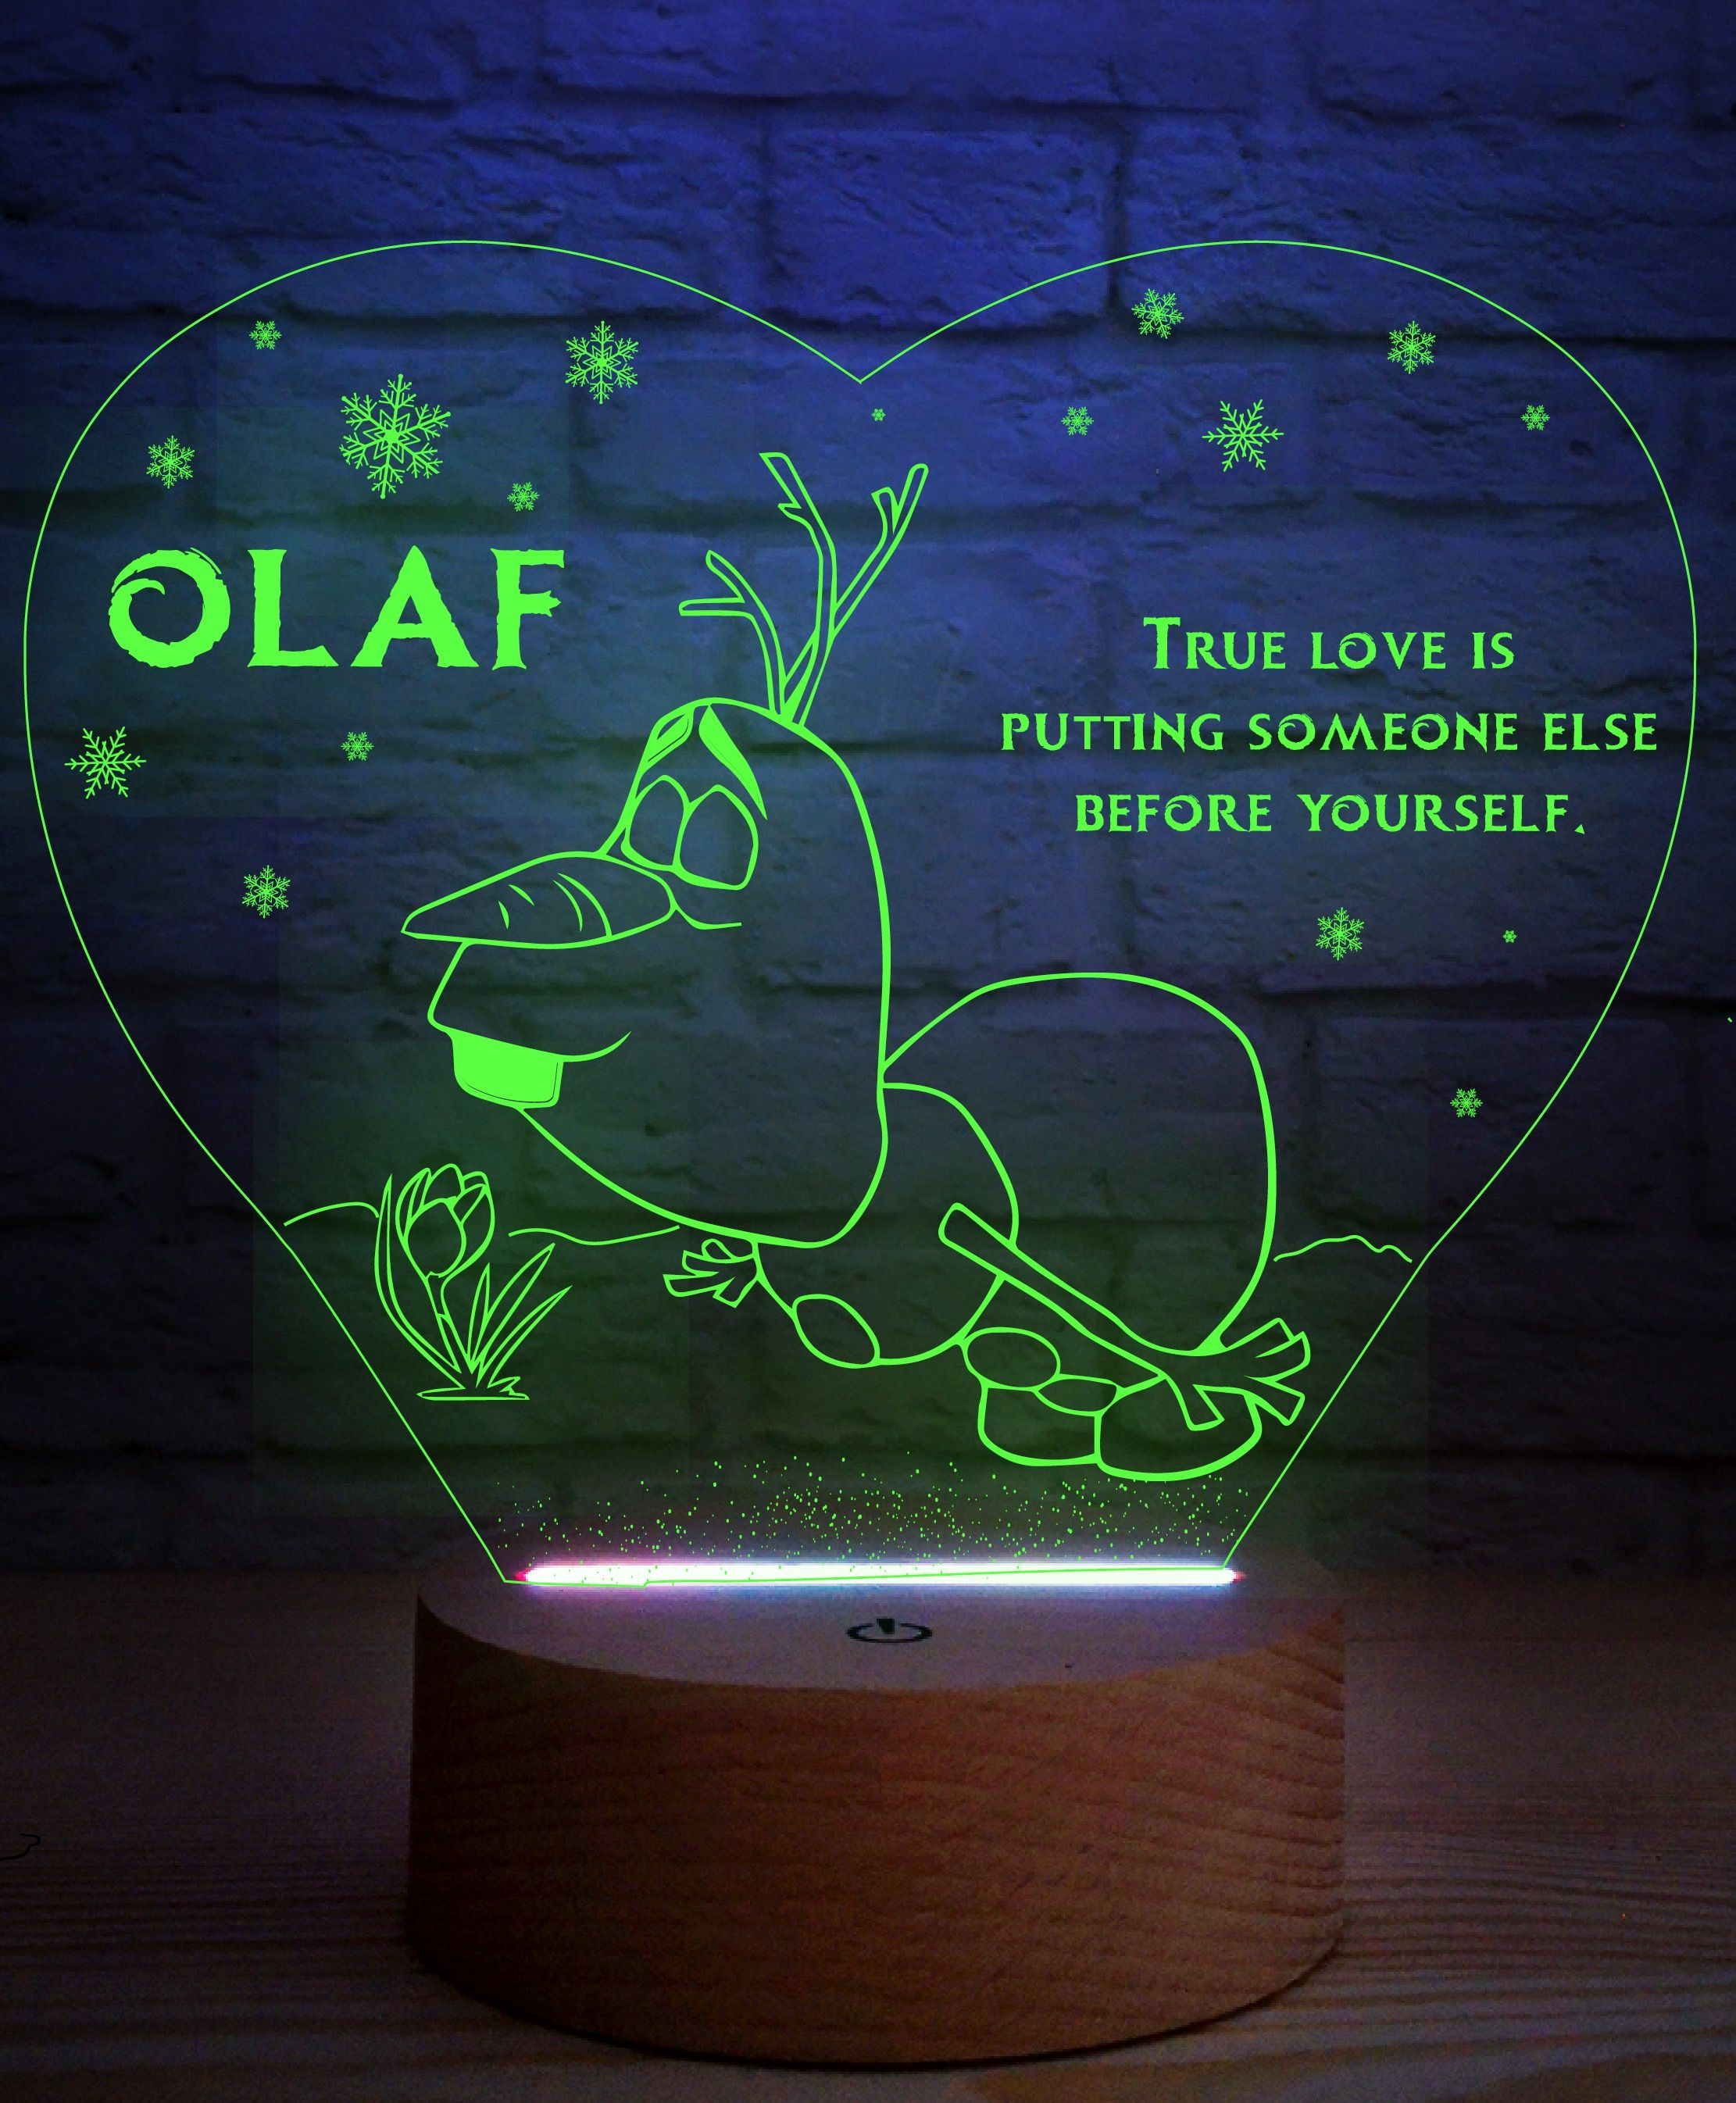 Olaf Night Lamp With Romantic Saying 3d Led Lamp Olaf Snowman Etsy Night Lamps Frozen Room 3d Led Lamp